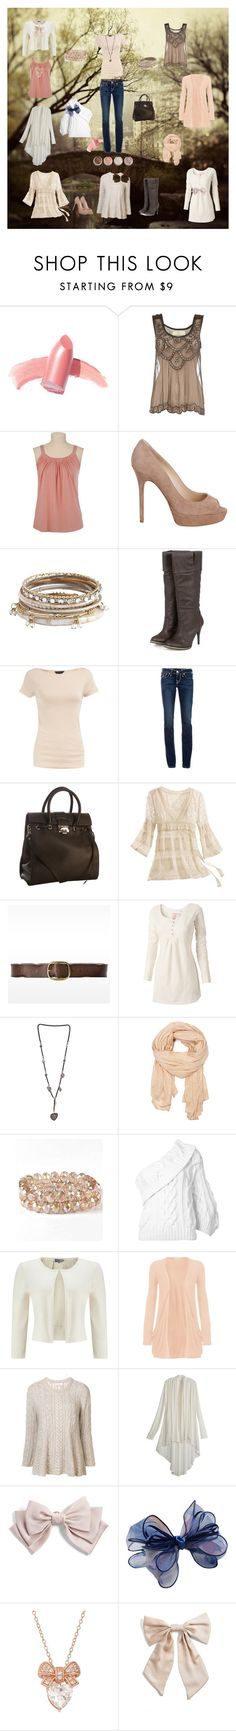 """""""Sweater Time"""" by tanya-celestial ❤ liked on Polyvore featuring Elizabeth Arden, Terre Mère, Dorothy Perkins, Jimmy Choo, MOOD, Silvian Heach, True Religion, Linea Pelle, Fat Face and Bibi Bijoux"""